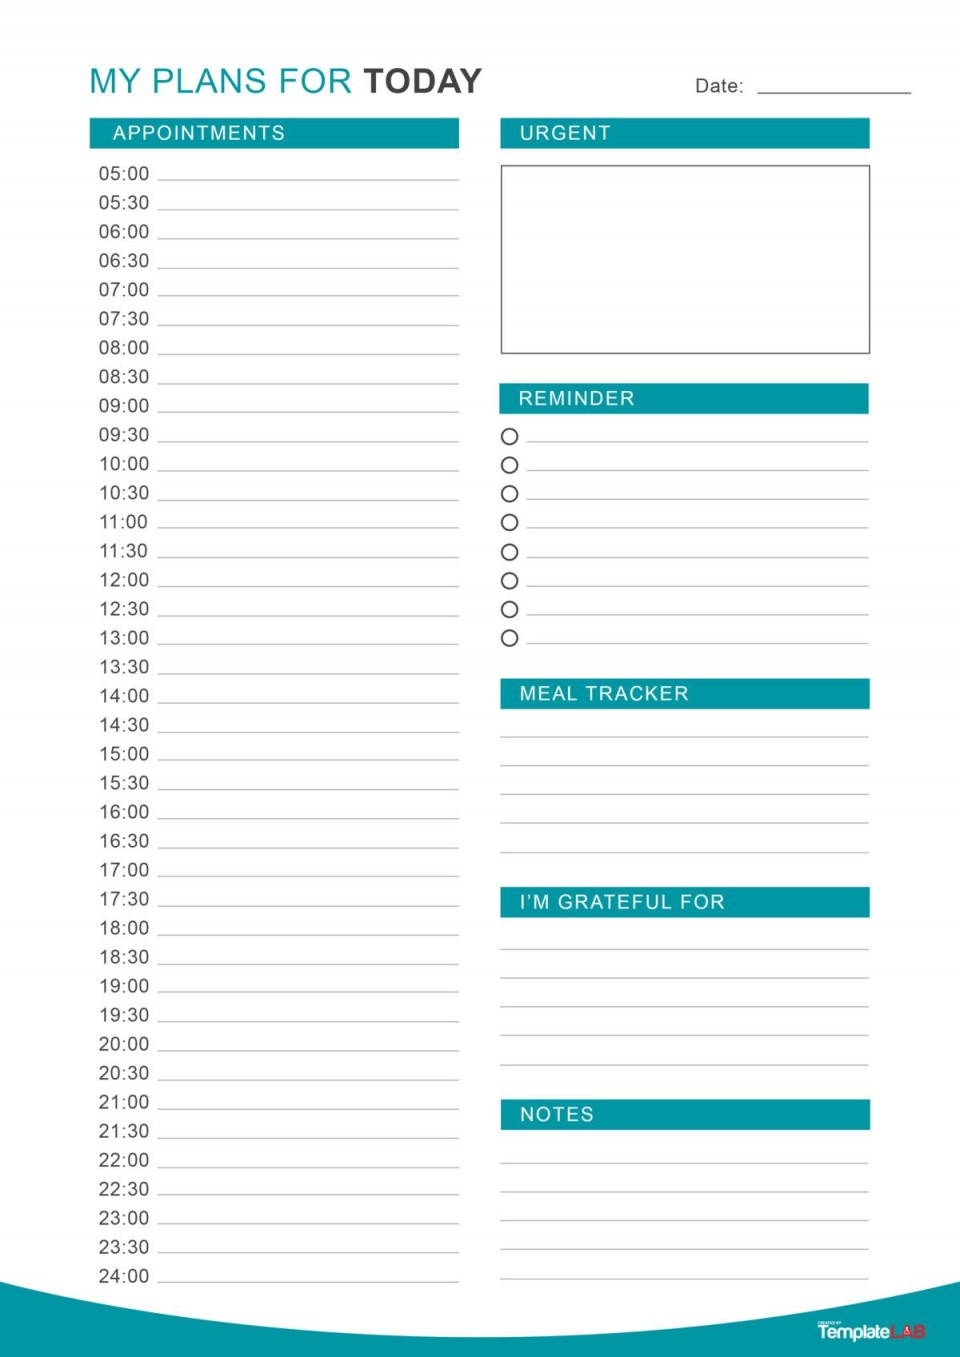 005 Surprising Printable Daily Schedule Template Inspiration 960